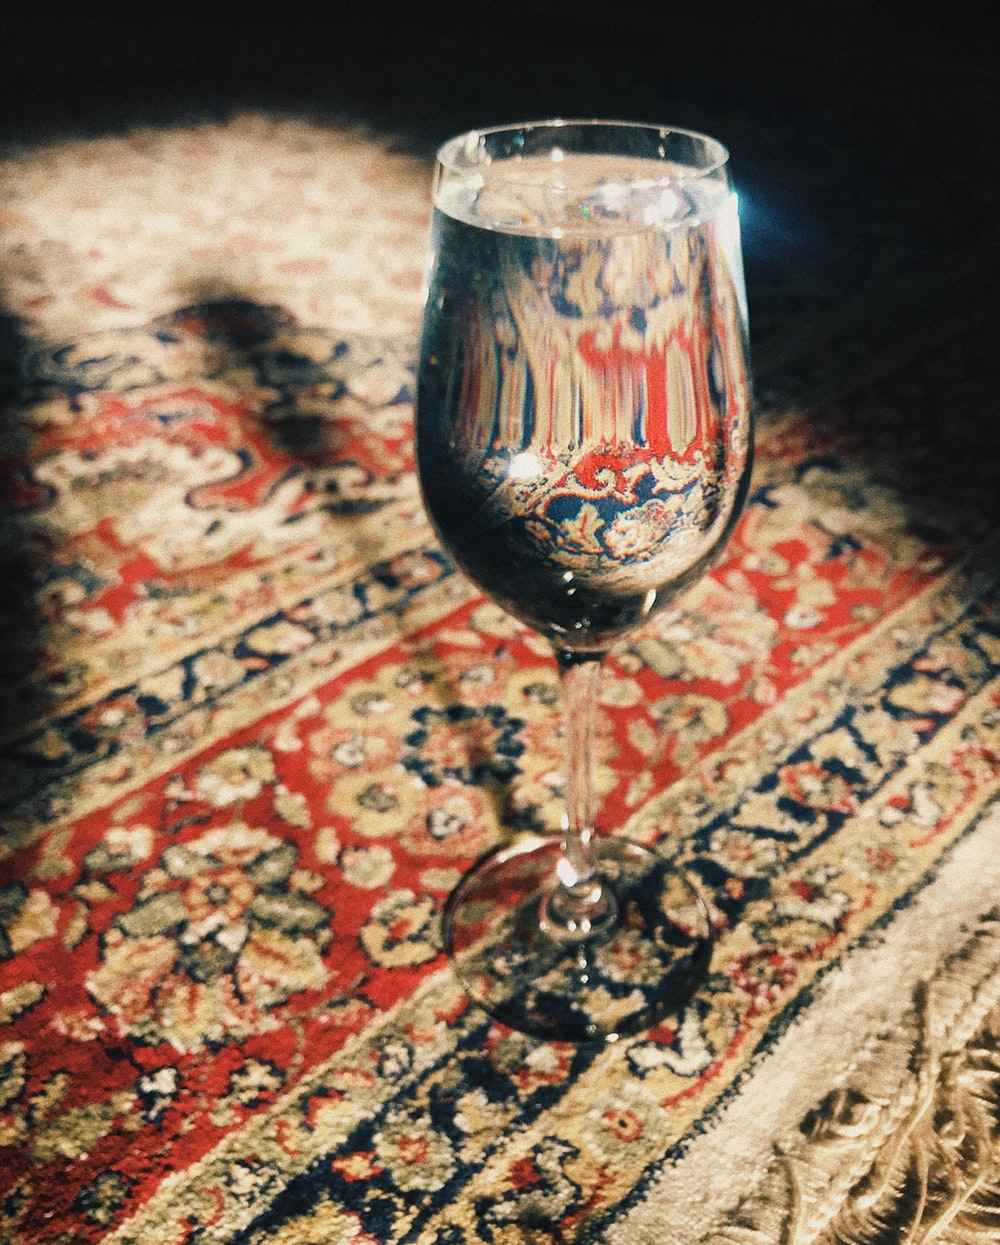 clear wine glass on red and brown floral textile